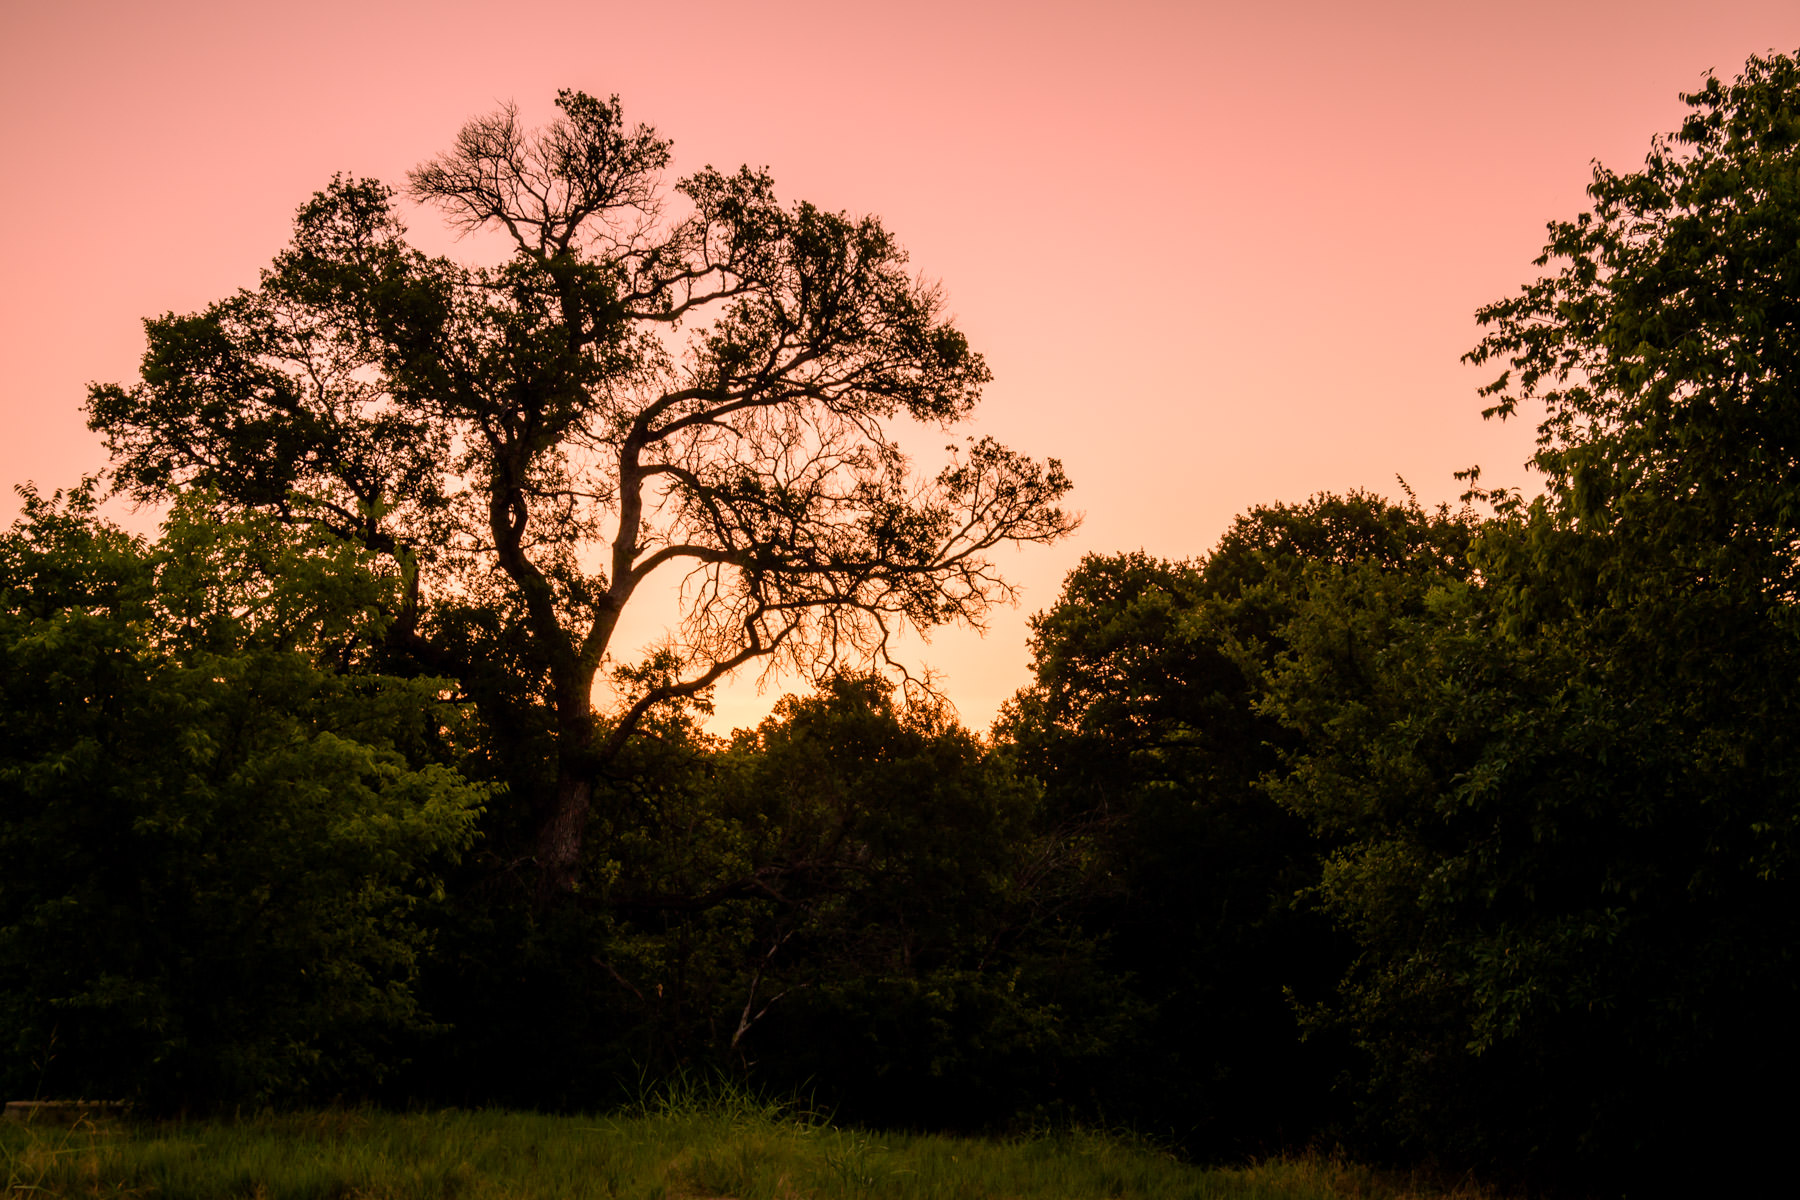 The rising sun backlights a tree at Arbor Hills Nature Preserve in Plano, Texas.